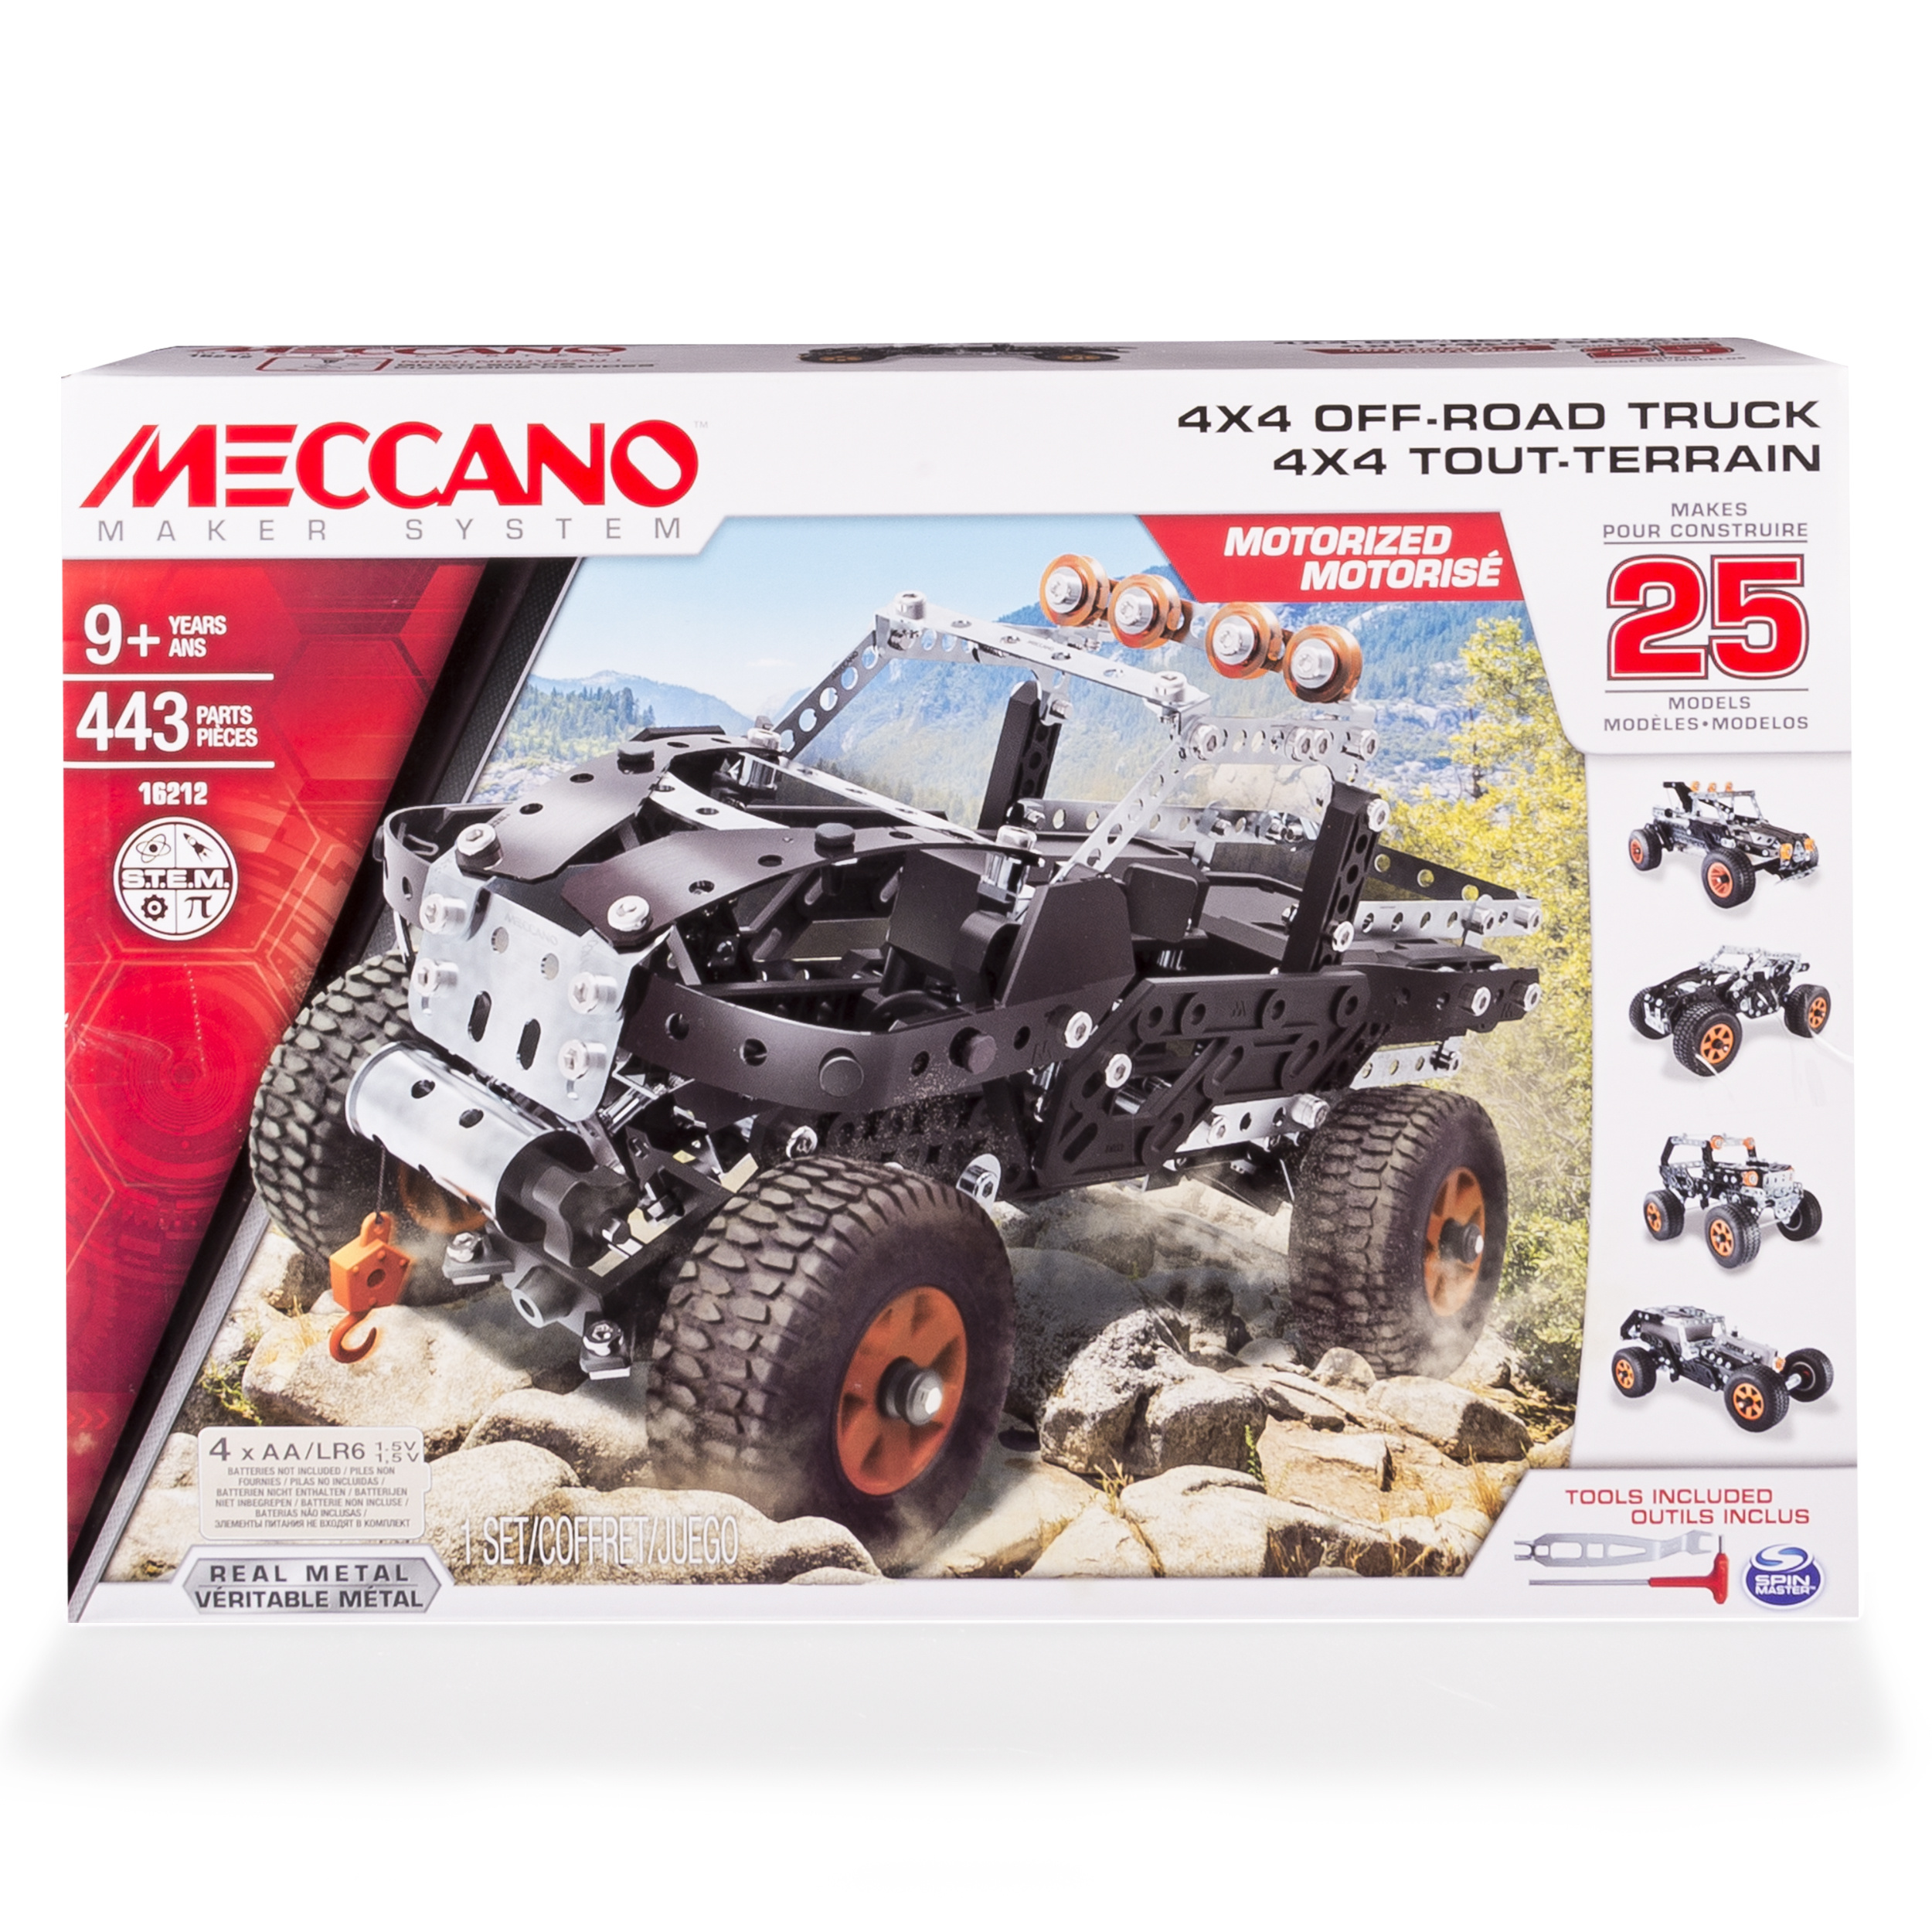 Meccano - 25 Models Set - 4x4 Off-Road Truck